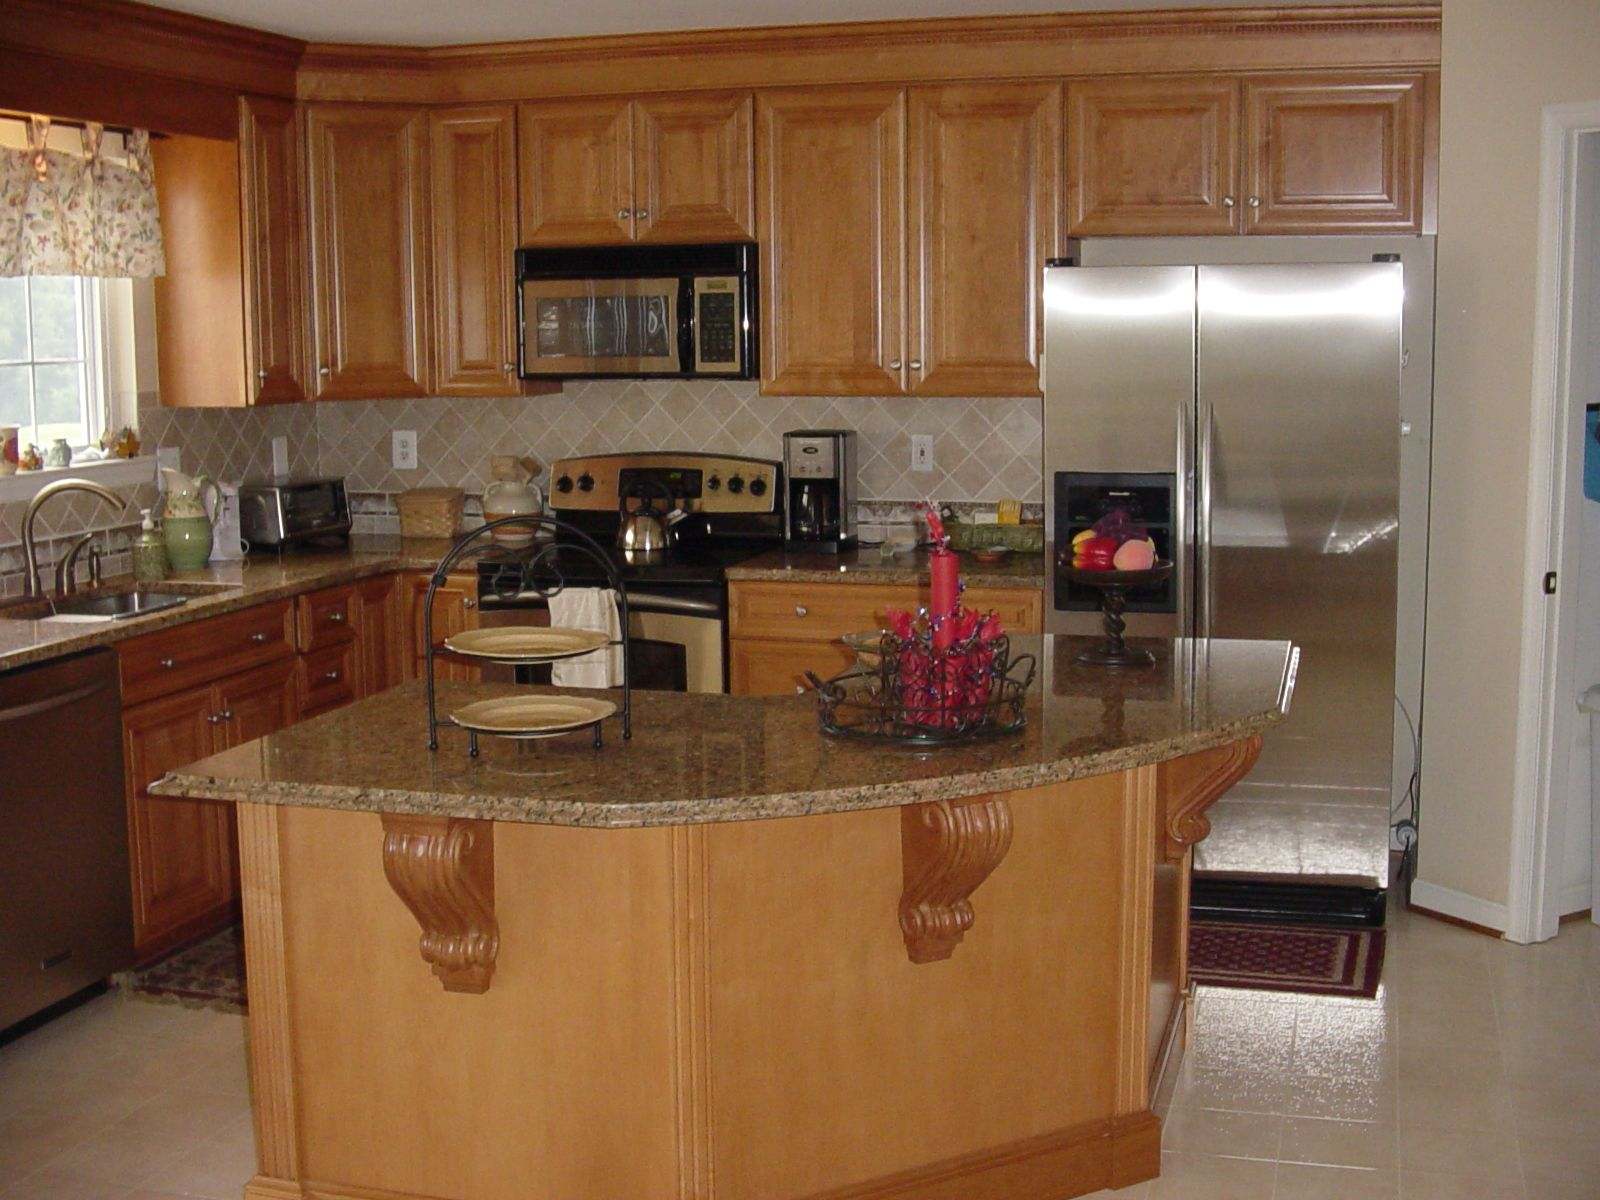 Home Page Kitchensaver Light Wood Cabinets Wood Cabinets Custom Kitchen Cabinets